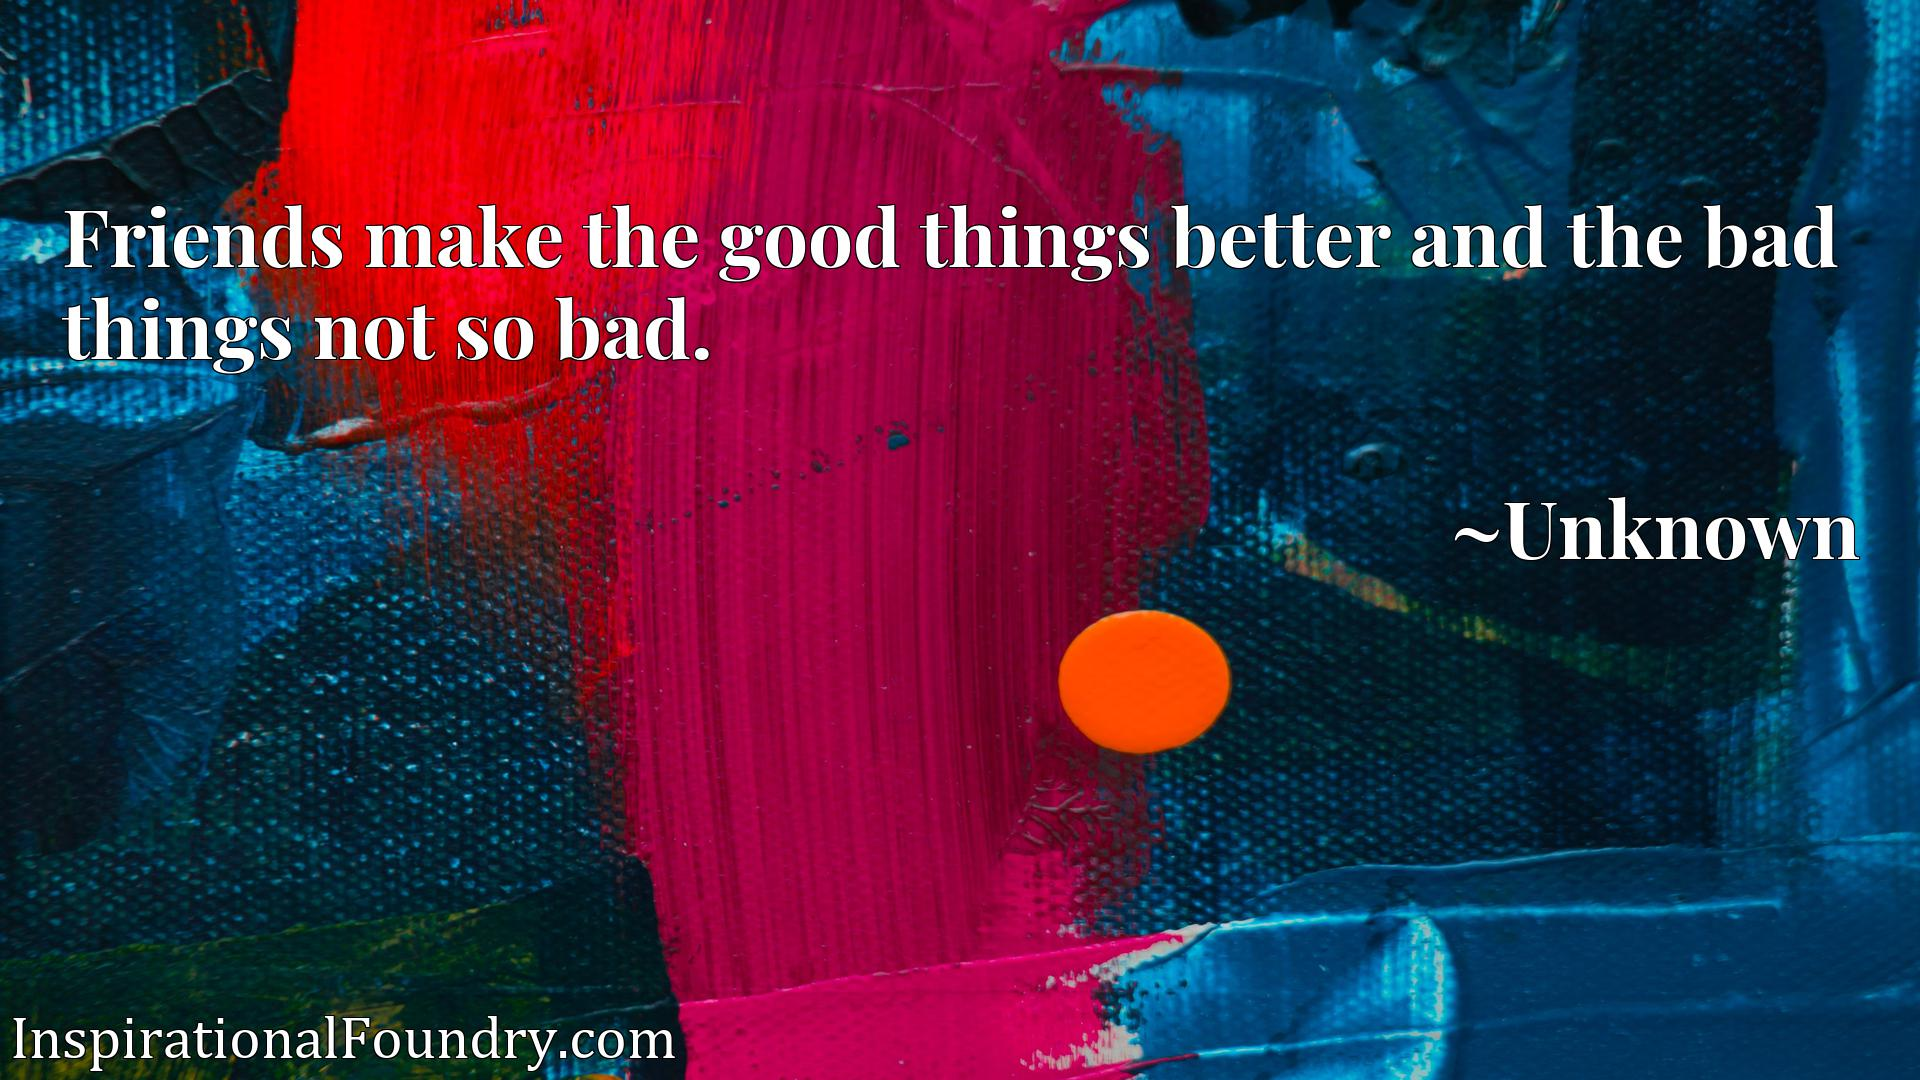 Friends make the good things better and the bad things not so bad.